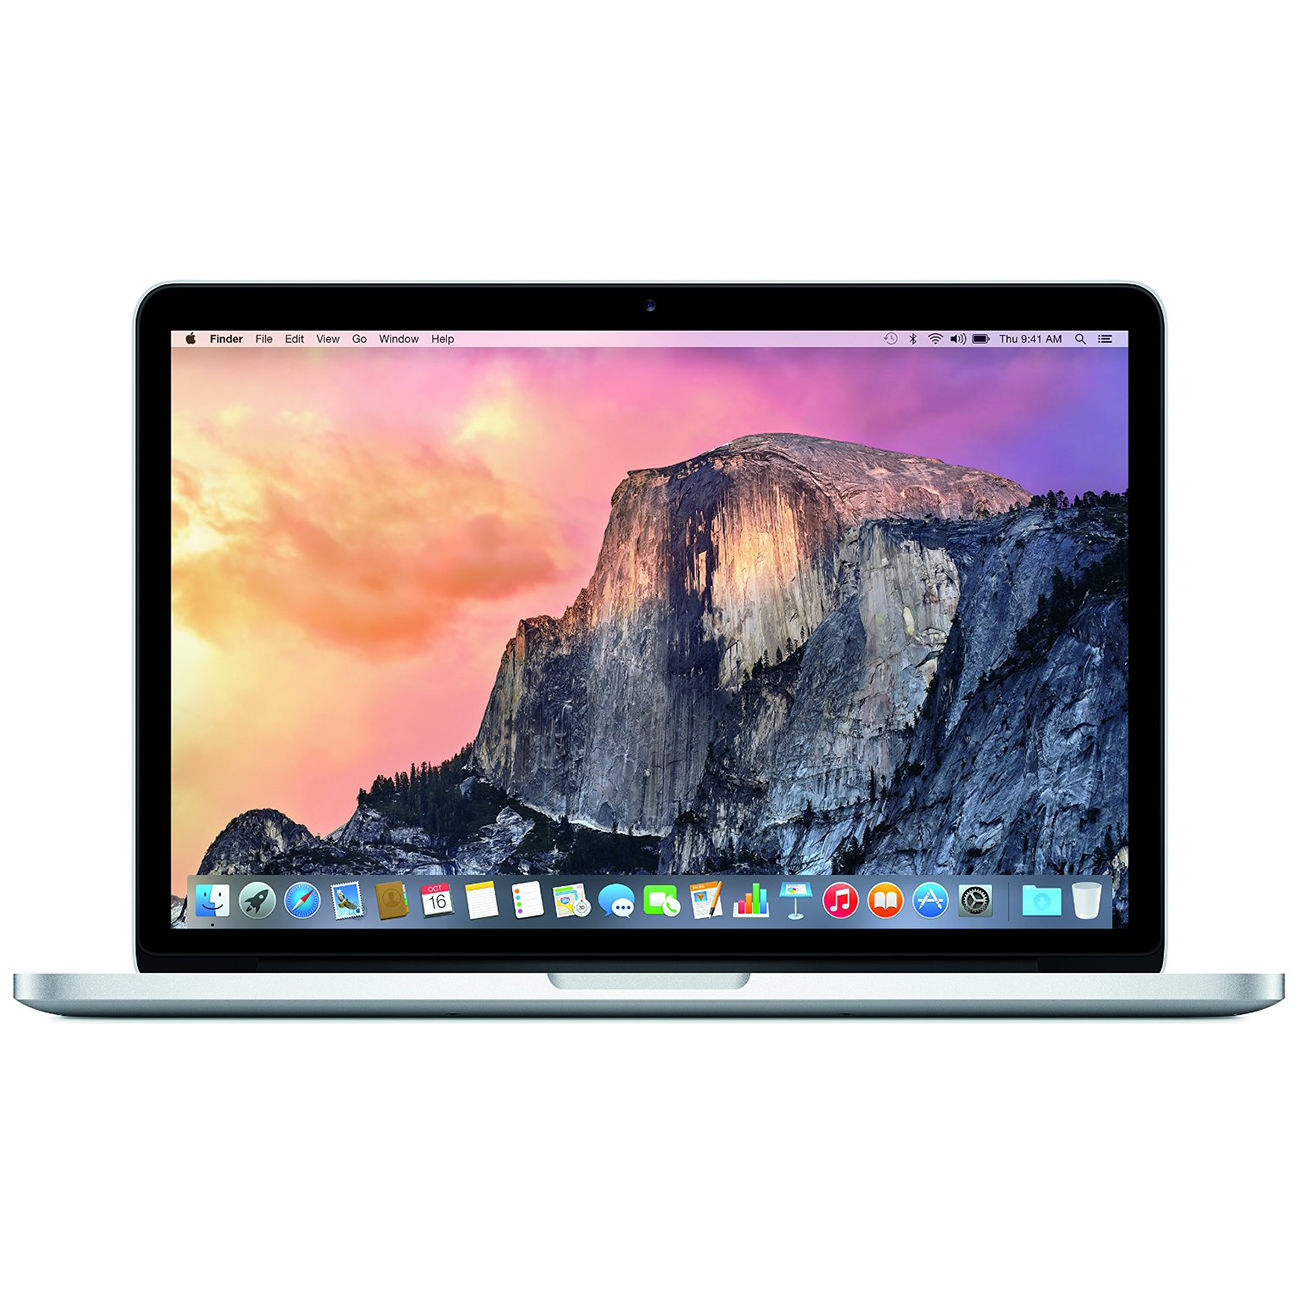 Refurbished Apple MacBook Pro 13.3-Inch Laptop MD101LL/A 2.5GHz / 500GB Hard Drive / 8GB DDR3 Memory